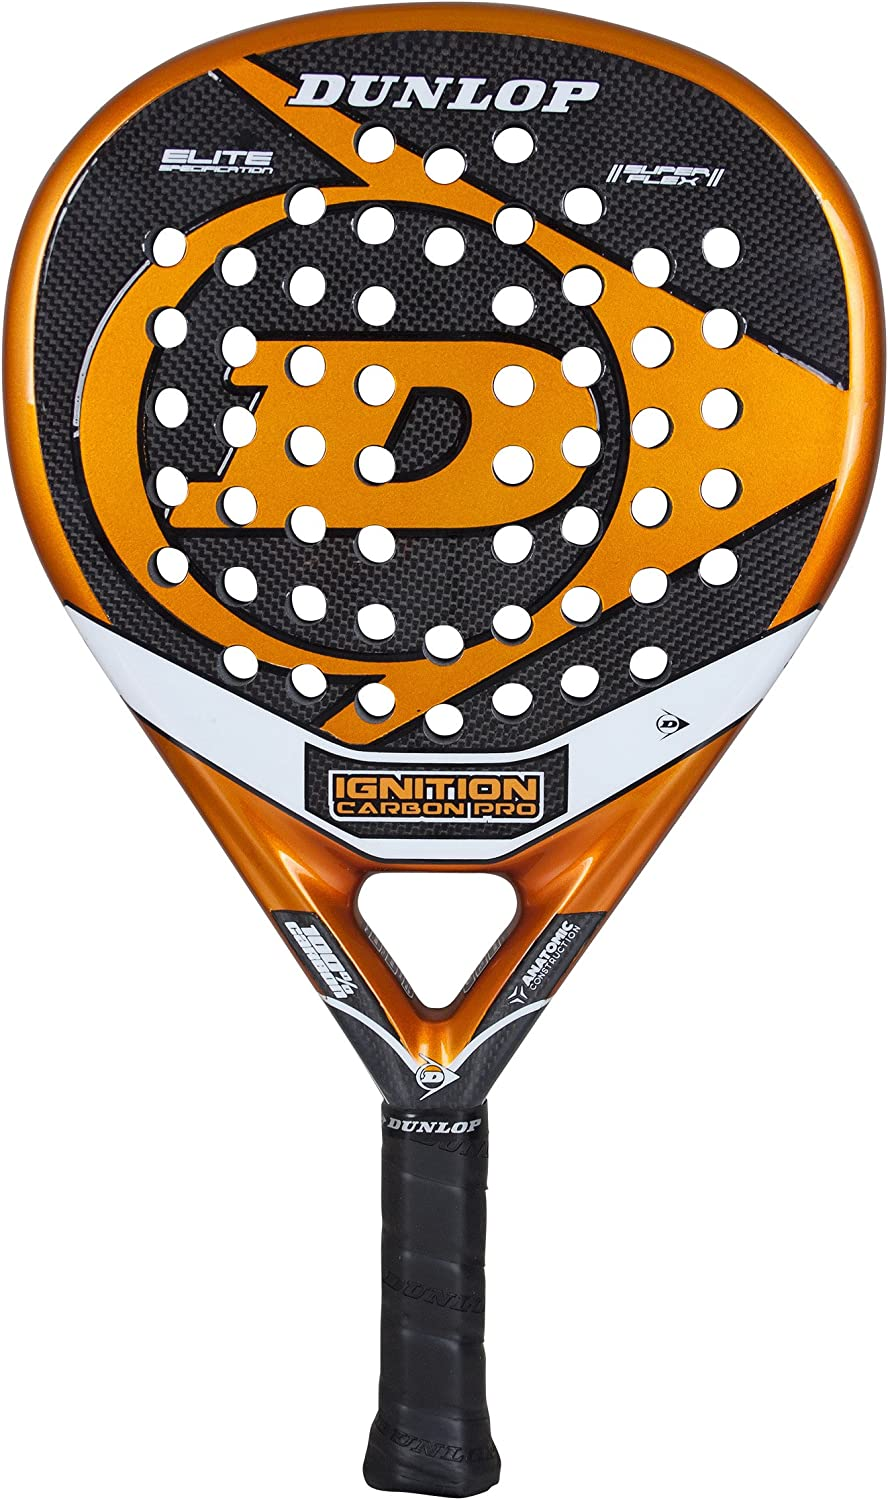 DUNLOP Ignition Carbon Pro - Pala de pádel: Amazon.es: Deportes y ...